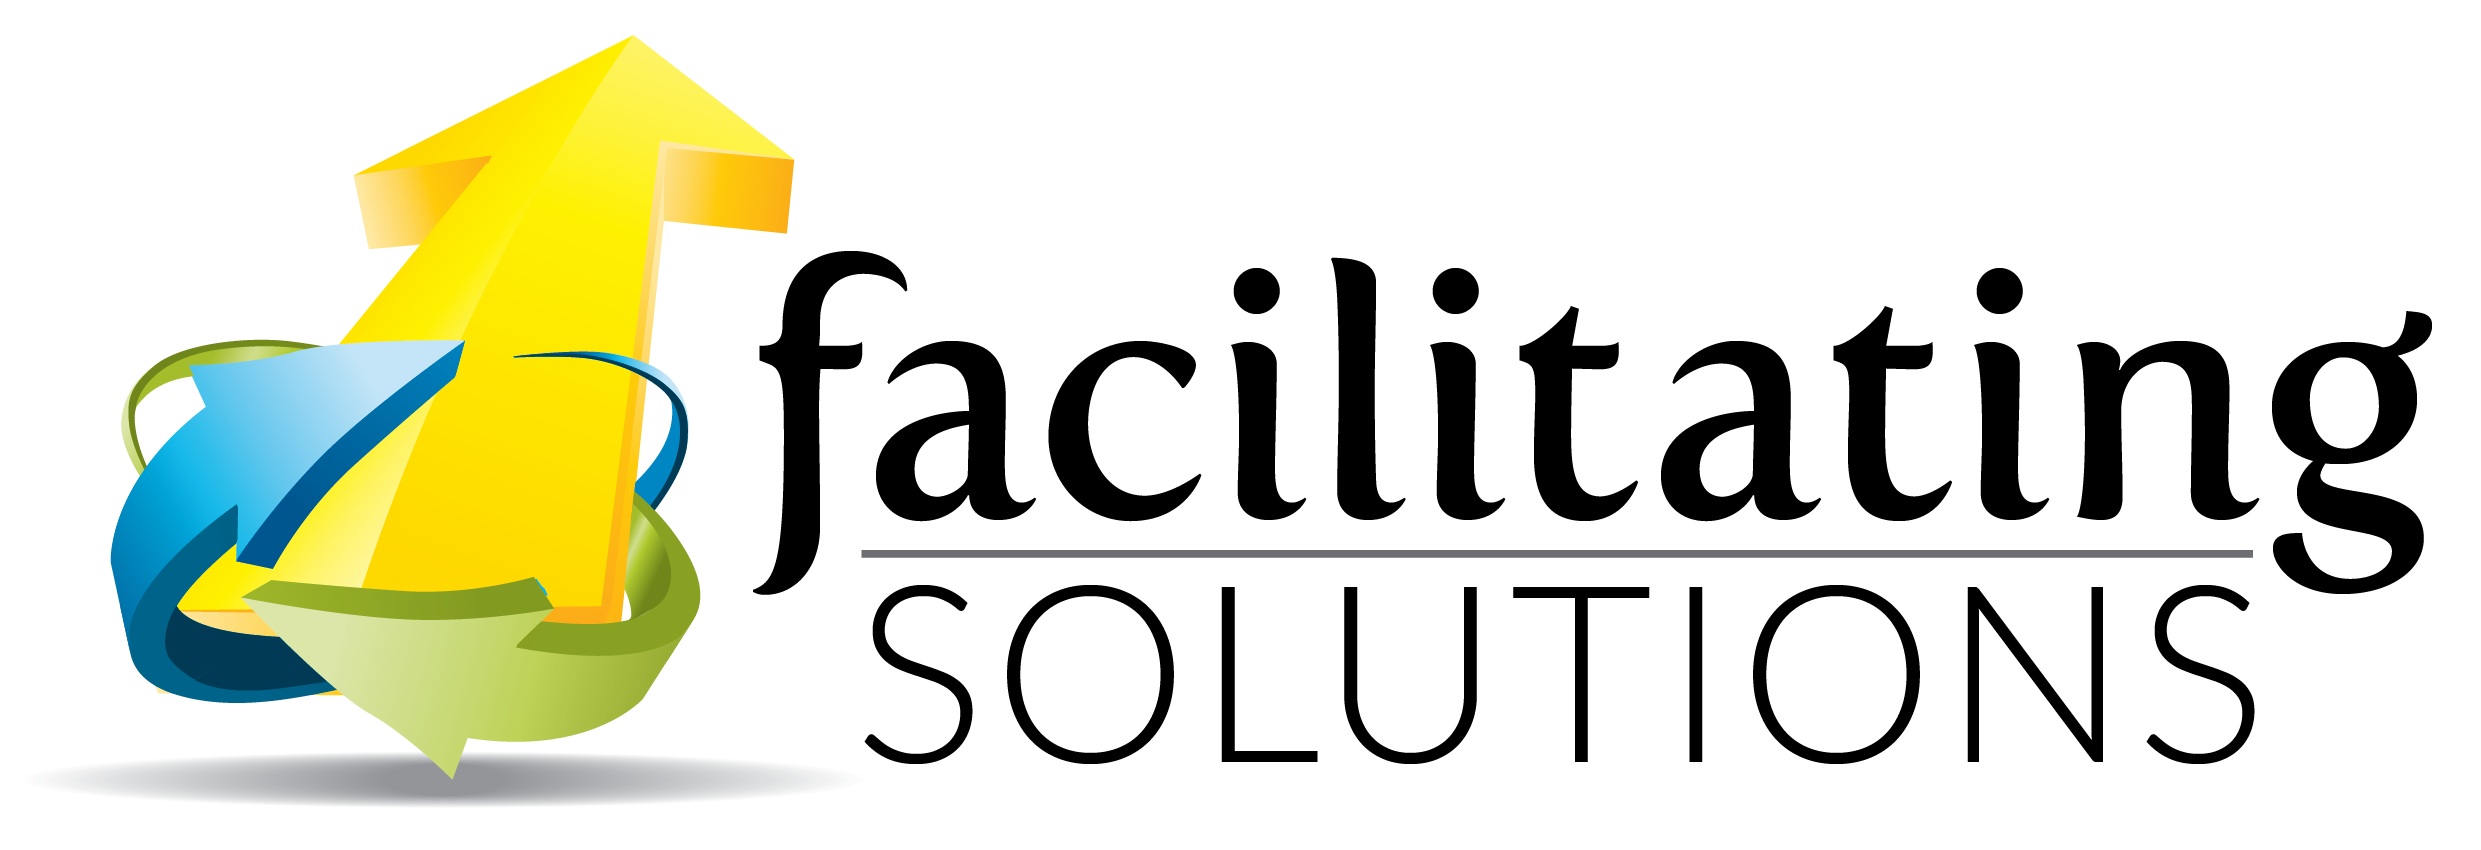 Facilitating Solutions